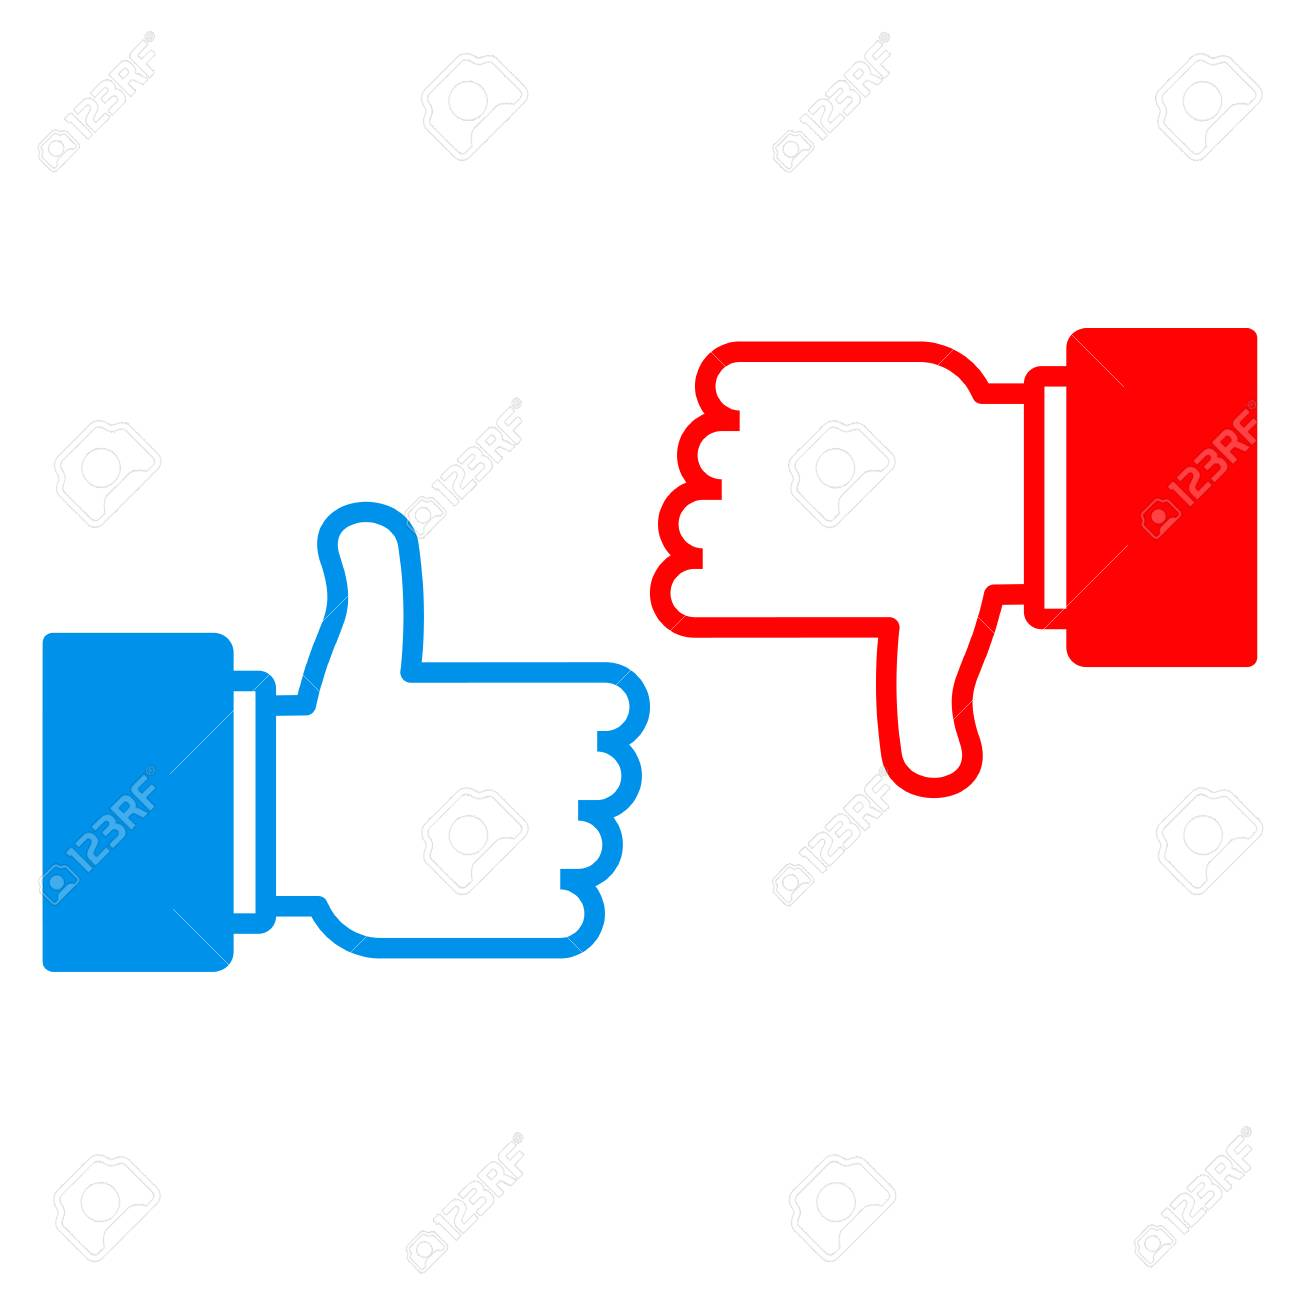 I Like And Dislike Sign Conceptual Symbol For Approval In Social